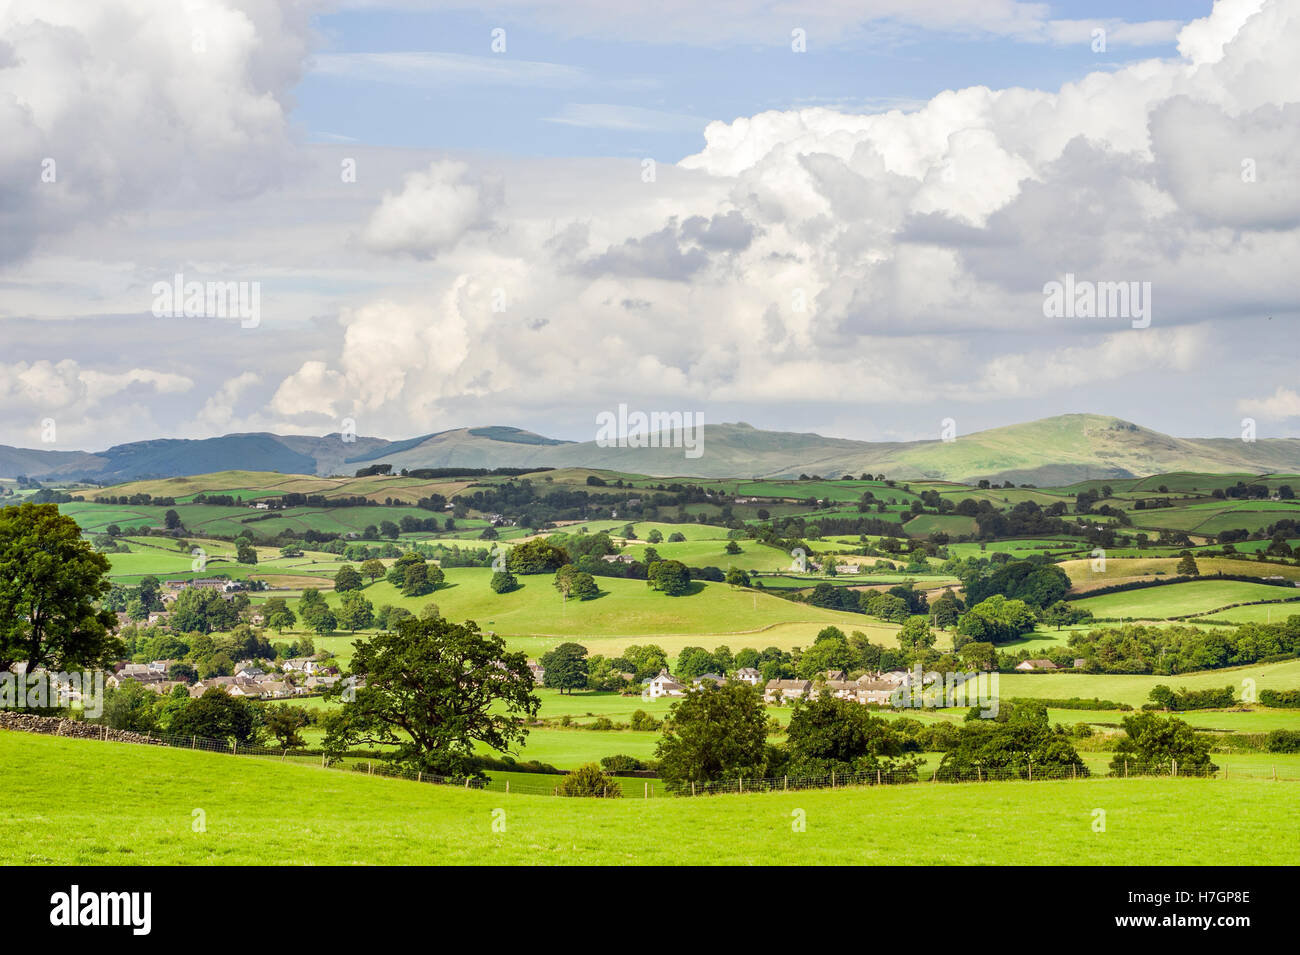 Landscape at the Lake District, also known as 'The Lakes' or Lakeland, North West England. - Stock Image